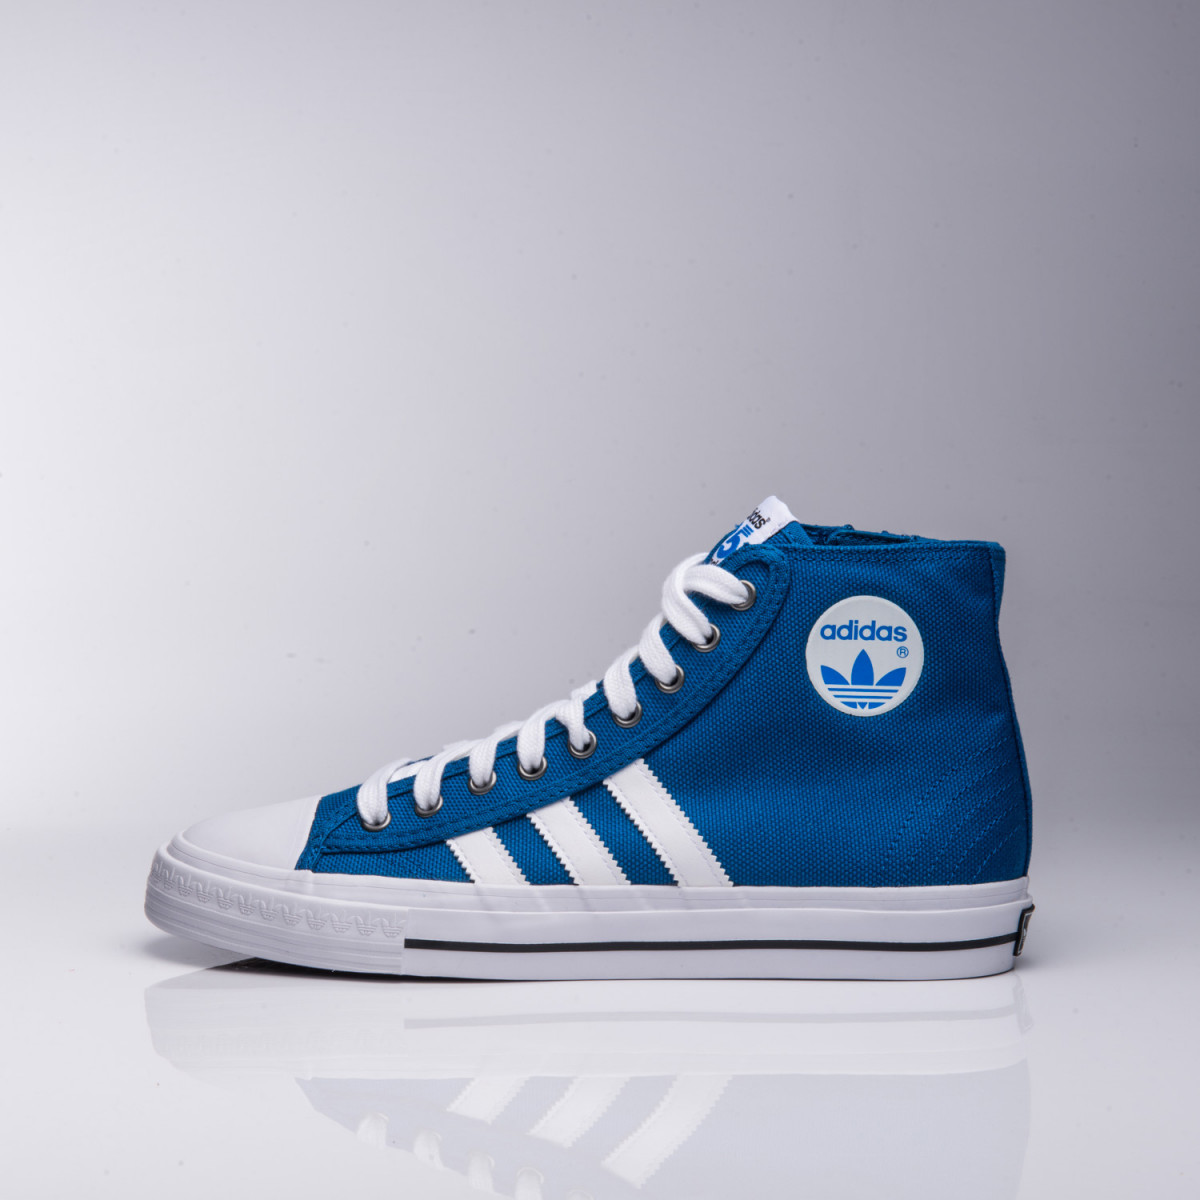 Zapatillas Adidas Originals Shooting Star Hi Nigo